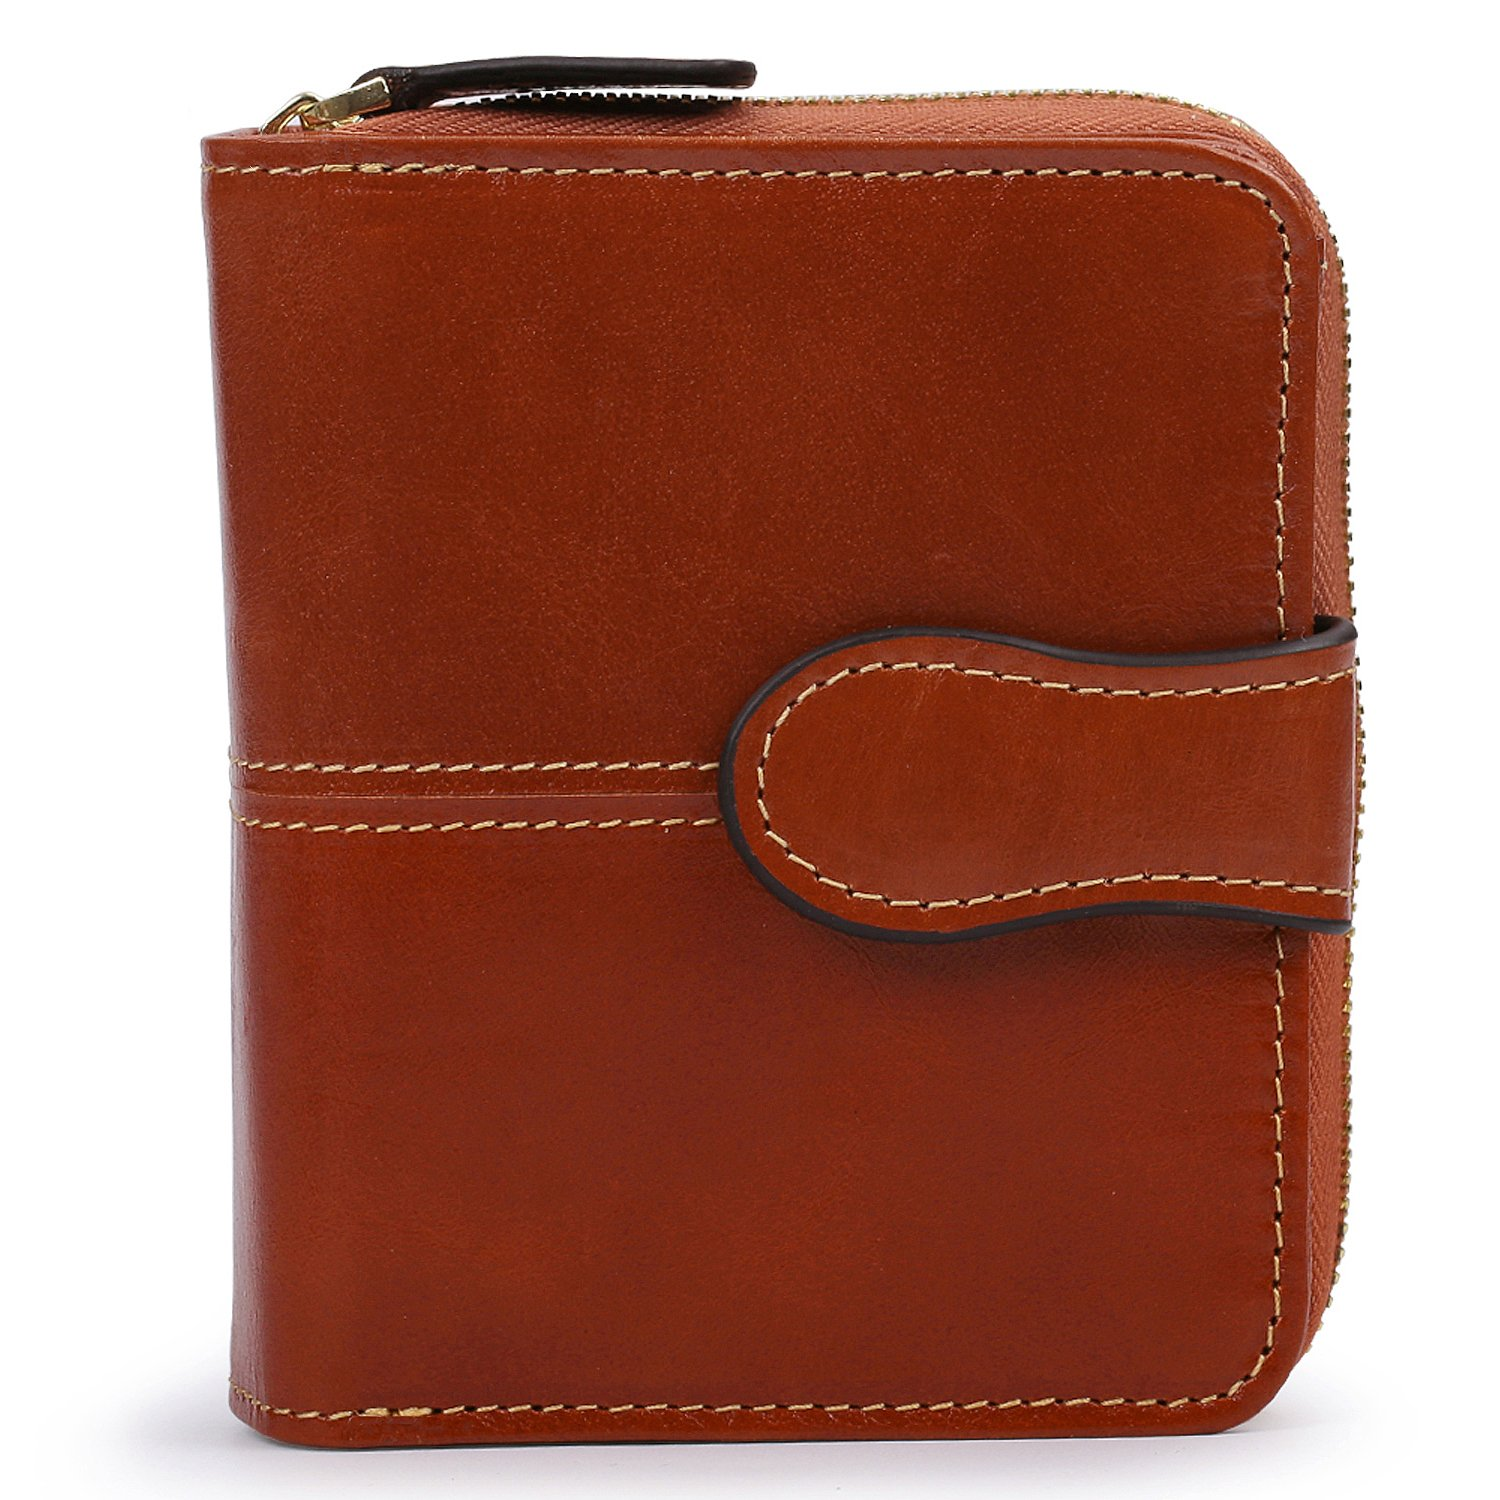 AINIMOER RFID Blocking Women's Leather Secure Spacious Small Wallet Zipper Pocket Card Case Compact Purse(Waxed Sorrel)